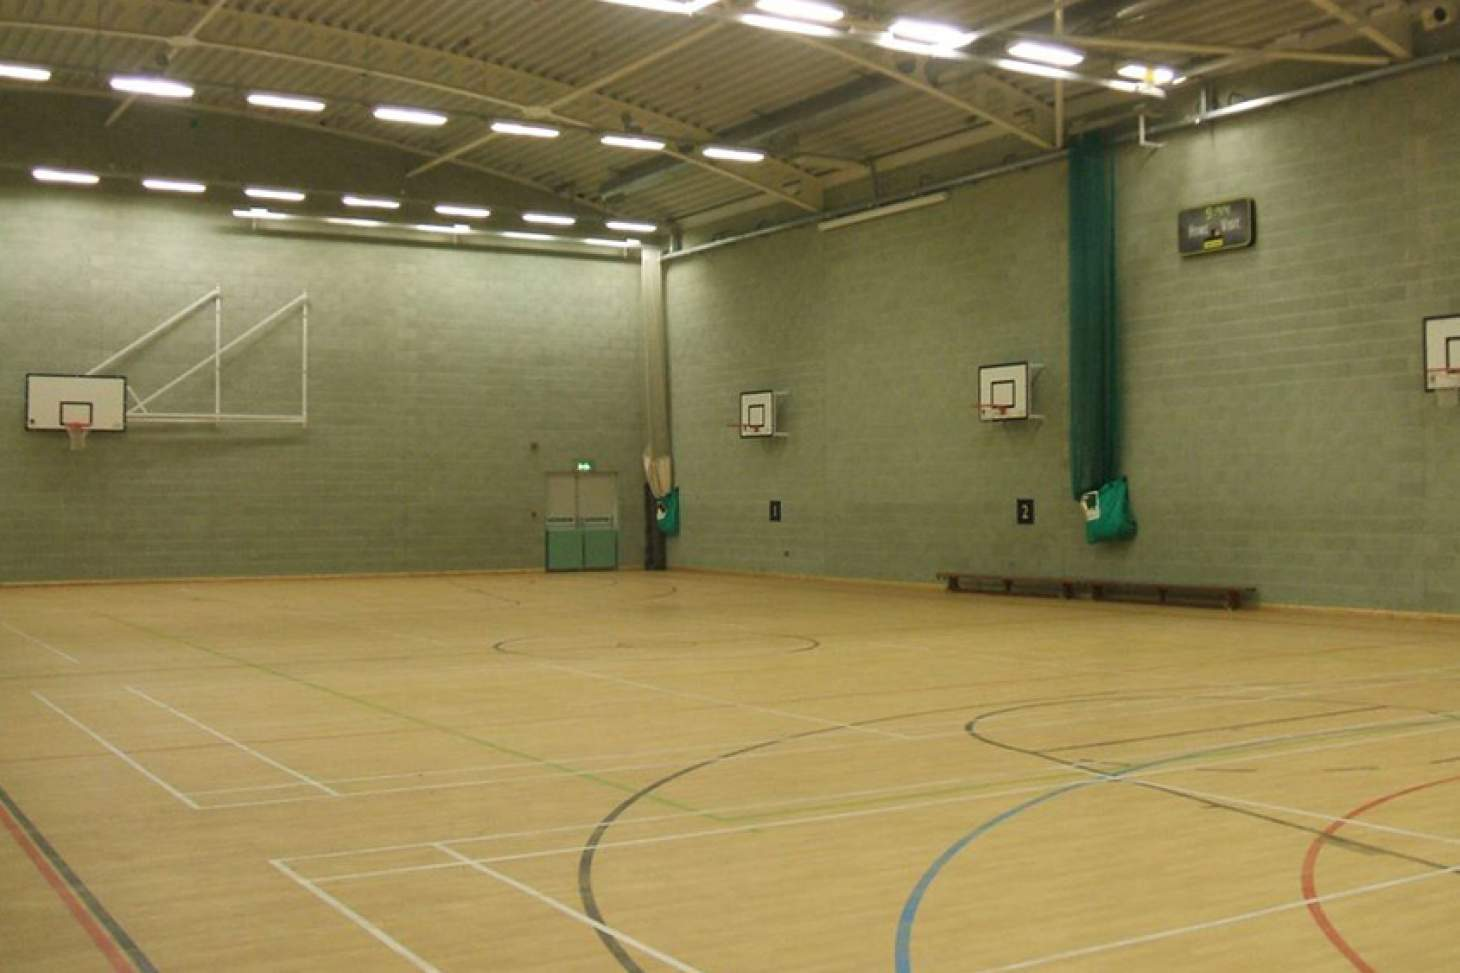 Longhill Sports Centre Half court | Sports hall basketball court